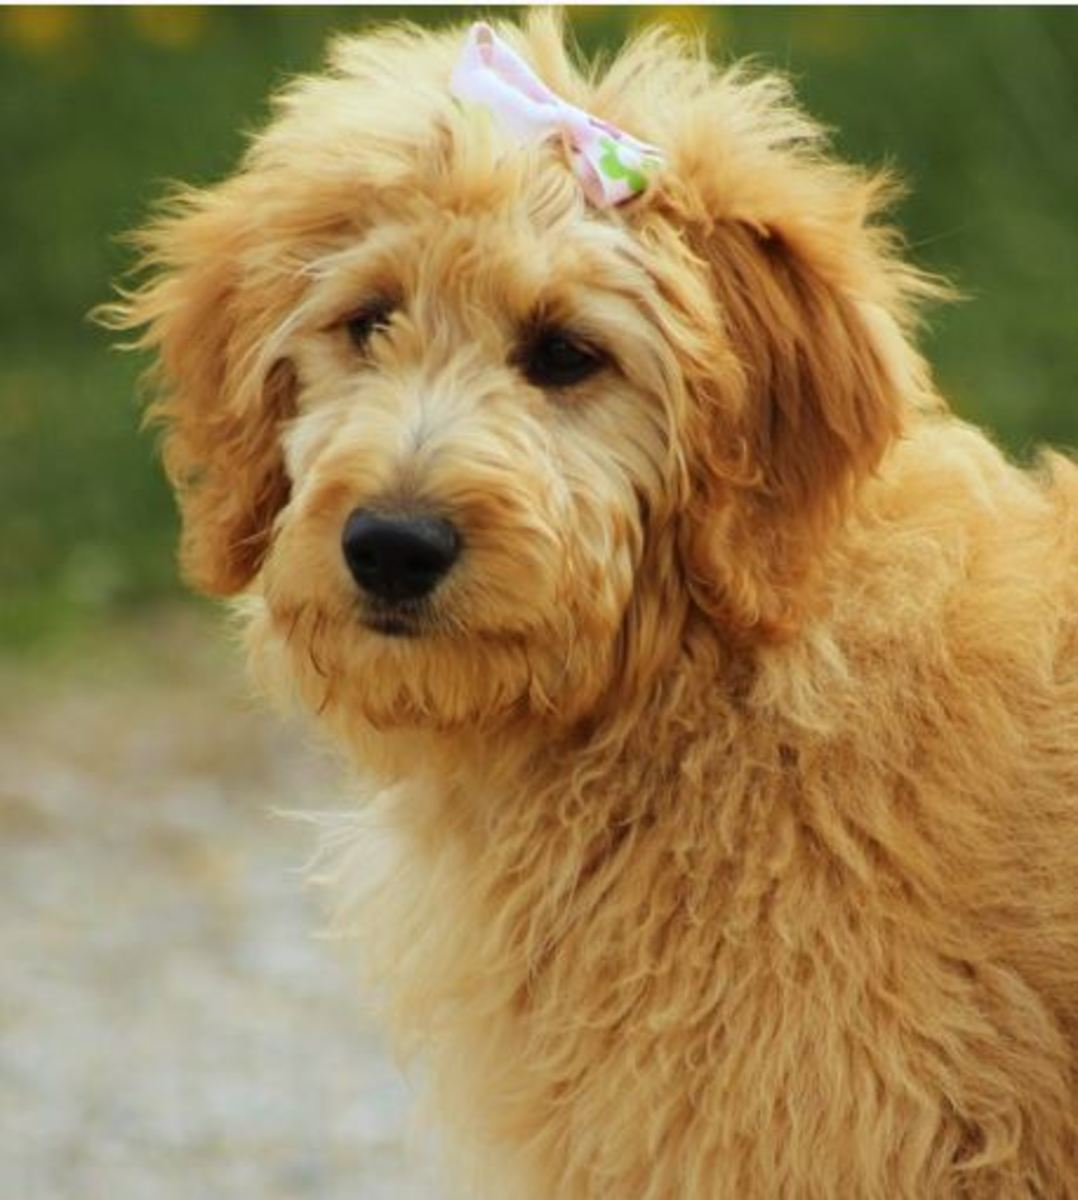 There are different types of goldendoodle generations